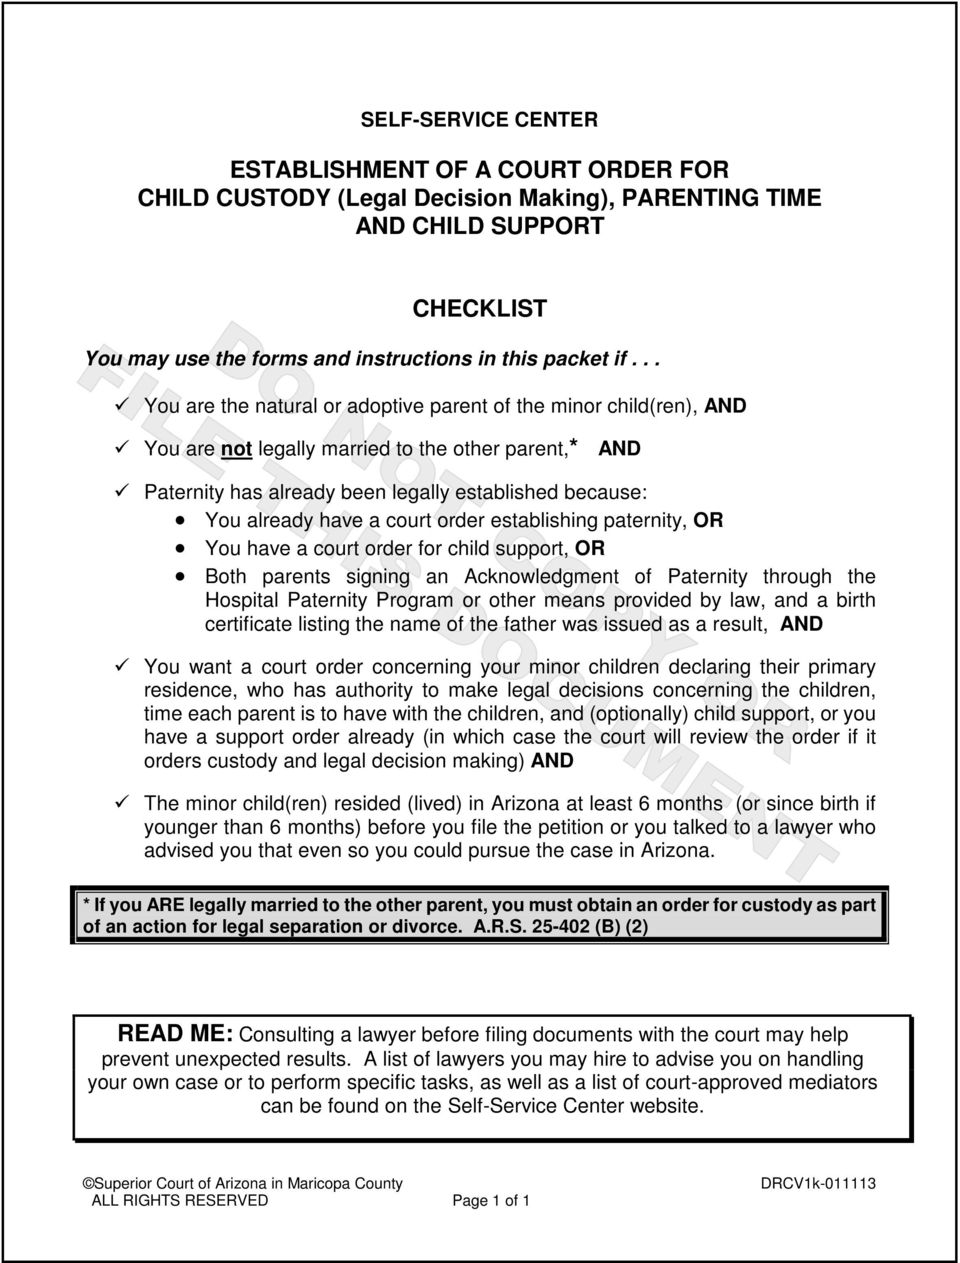 court order establishing paternity, OR You have a court order for child support, OR Both parents signing an Acknowledgment of Paternity through the Hospital Paternity Program or other means provided